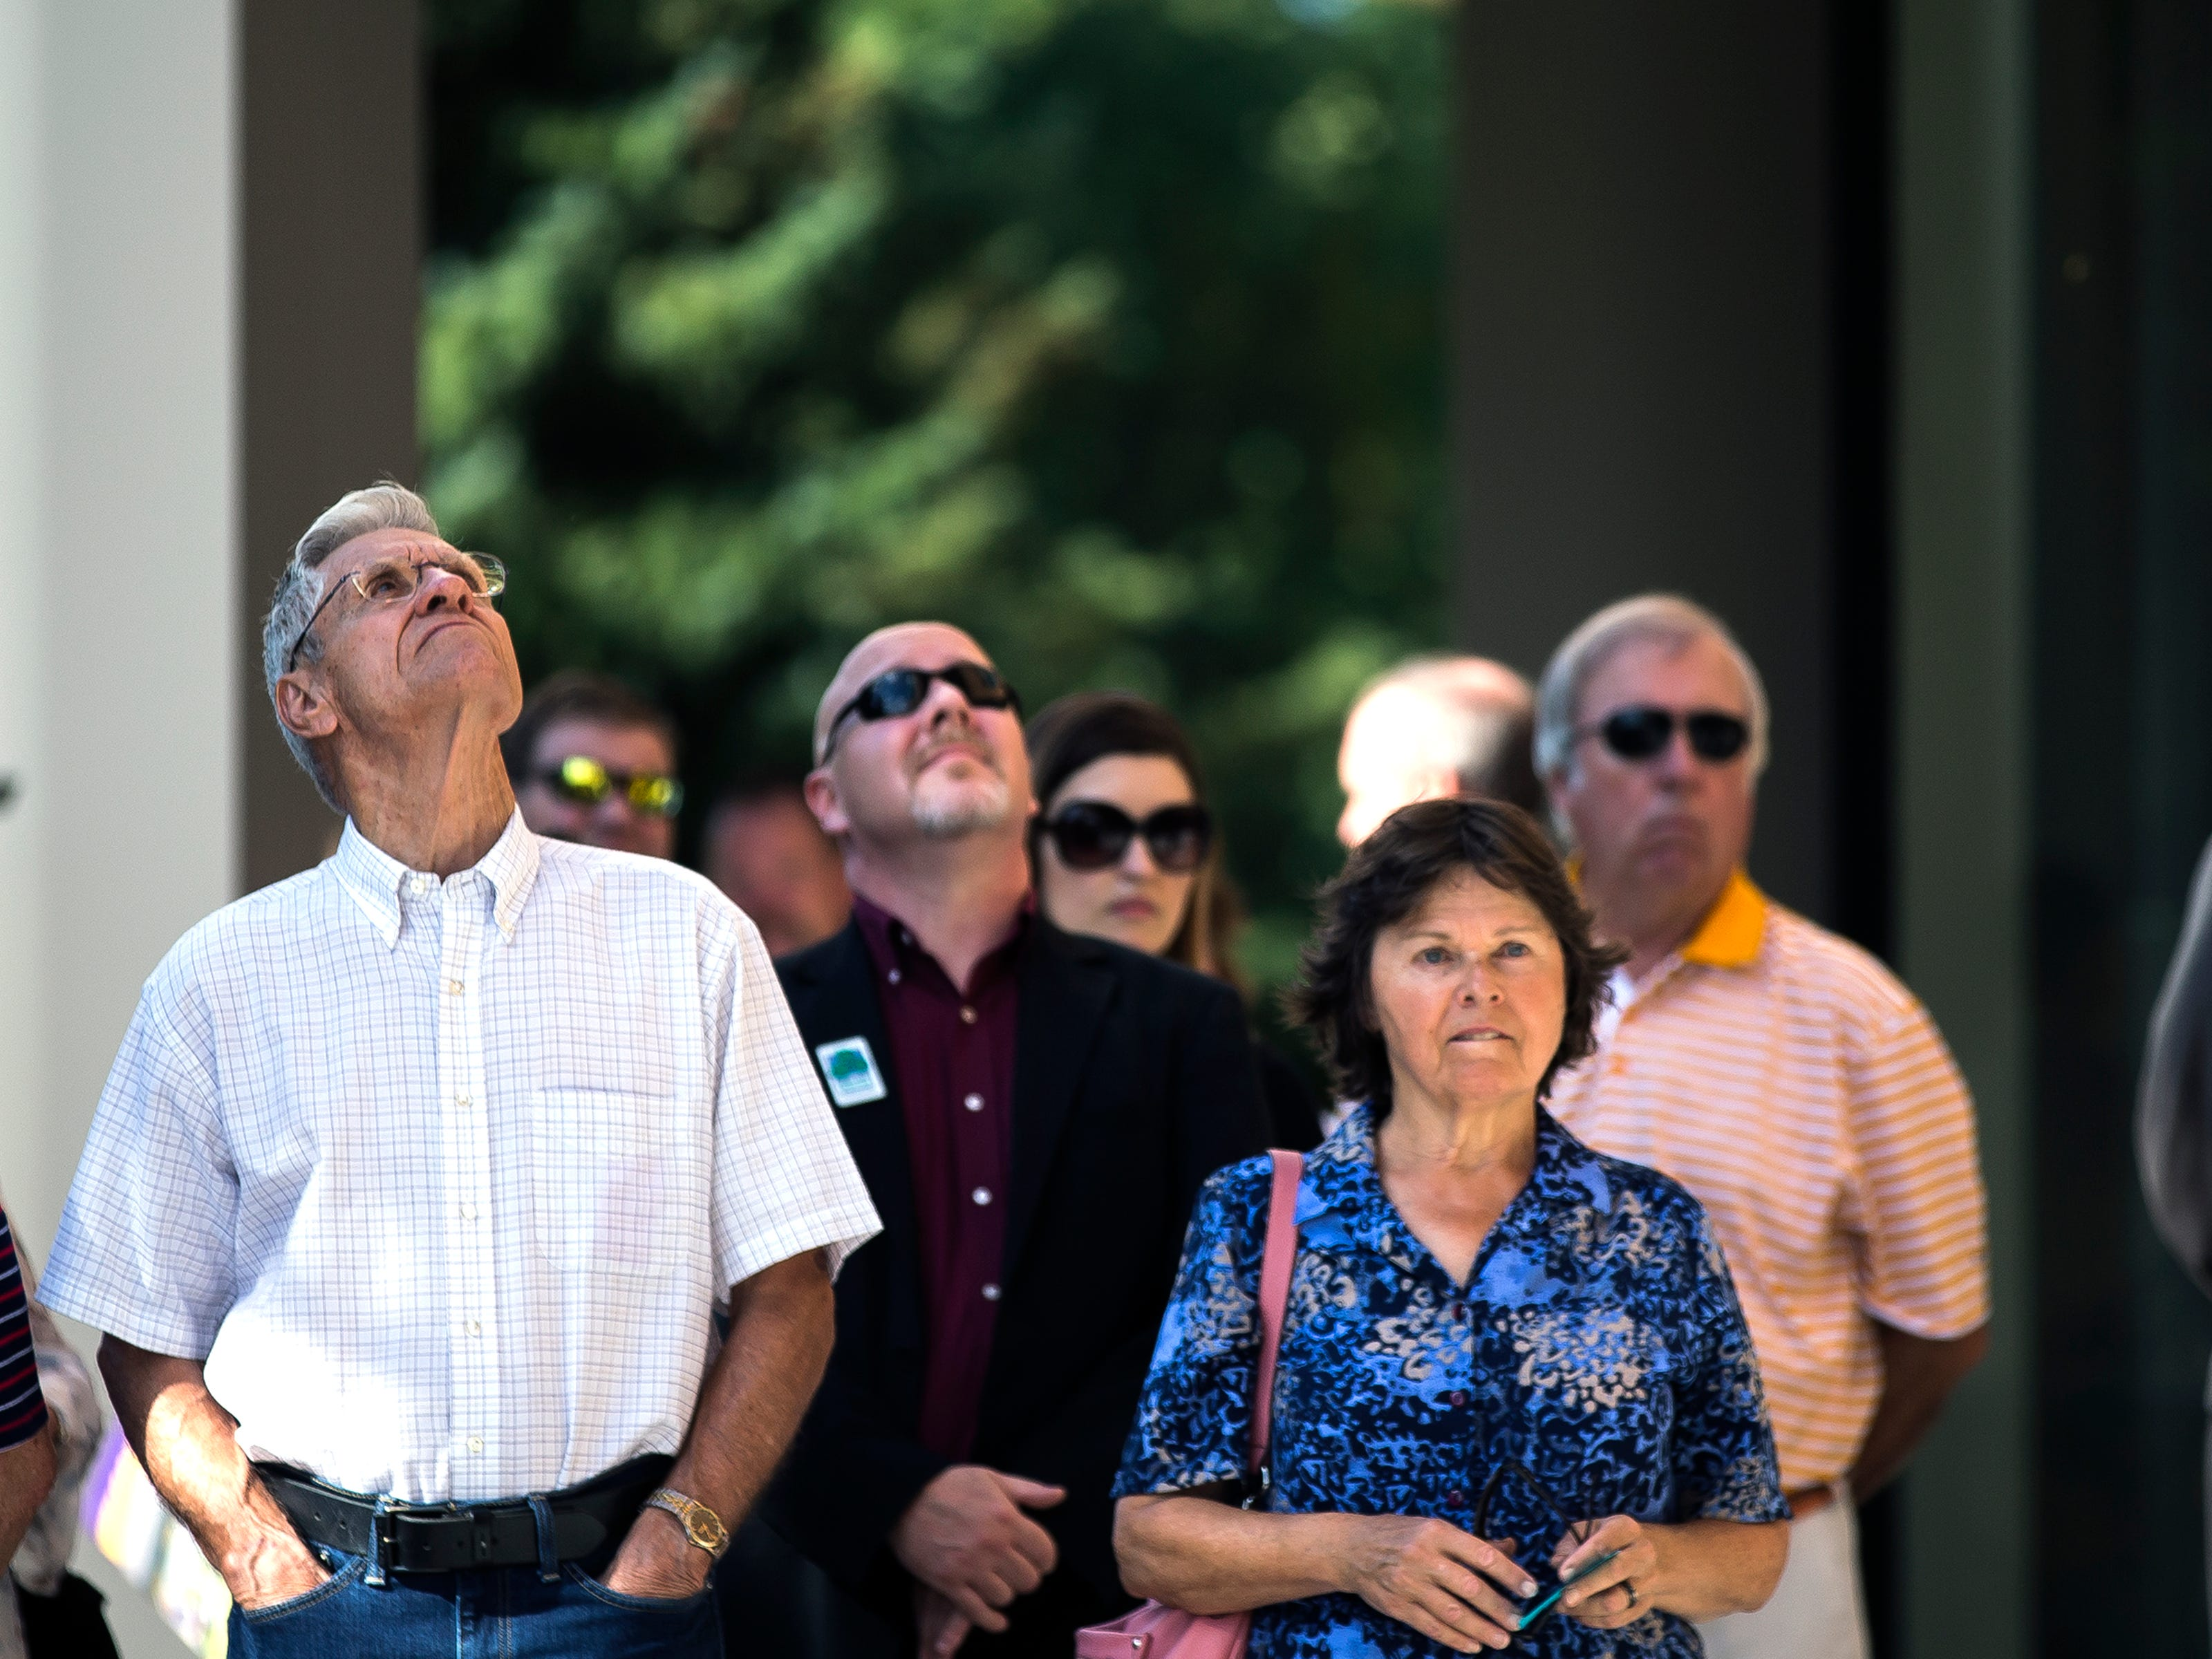 Attendees look at the architecture of the Chemistry Biology Building at the University of Wisconsin-Stevens Point during the opening ceremony in Stevens Point, Wis., Sept. 14, 2018.